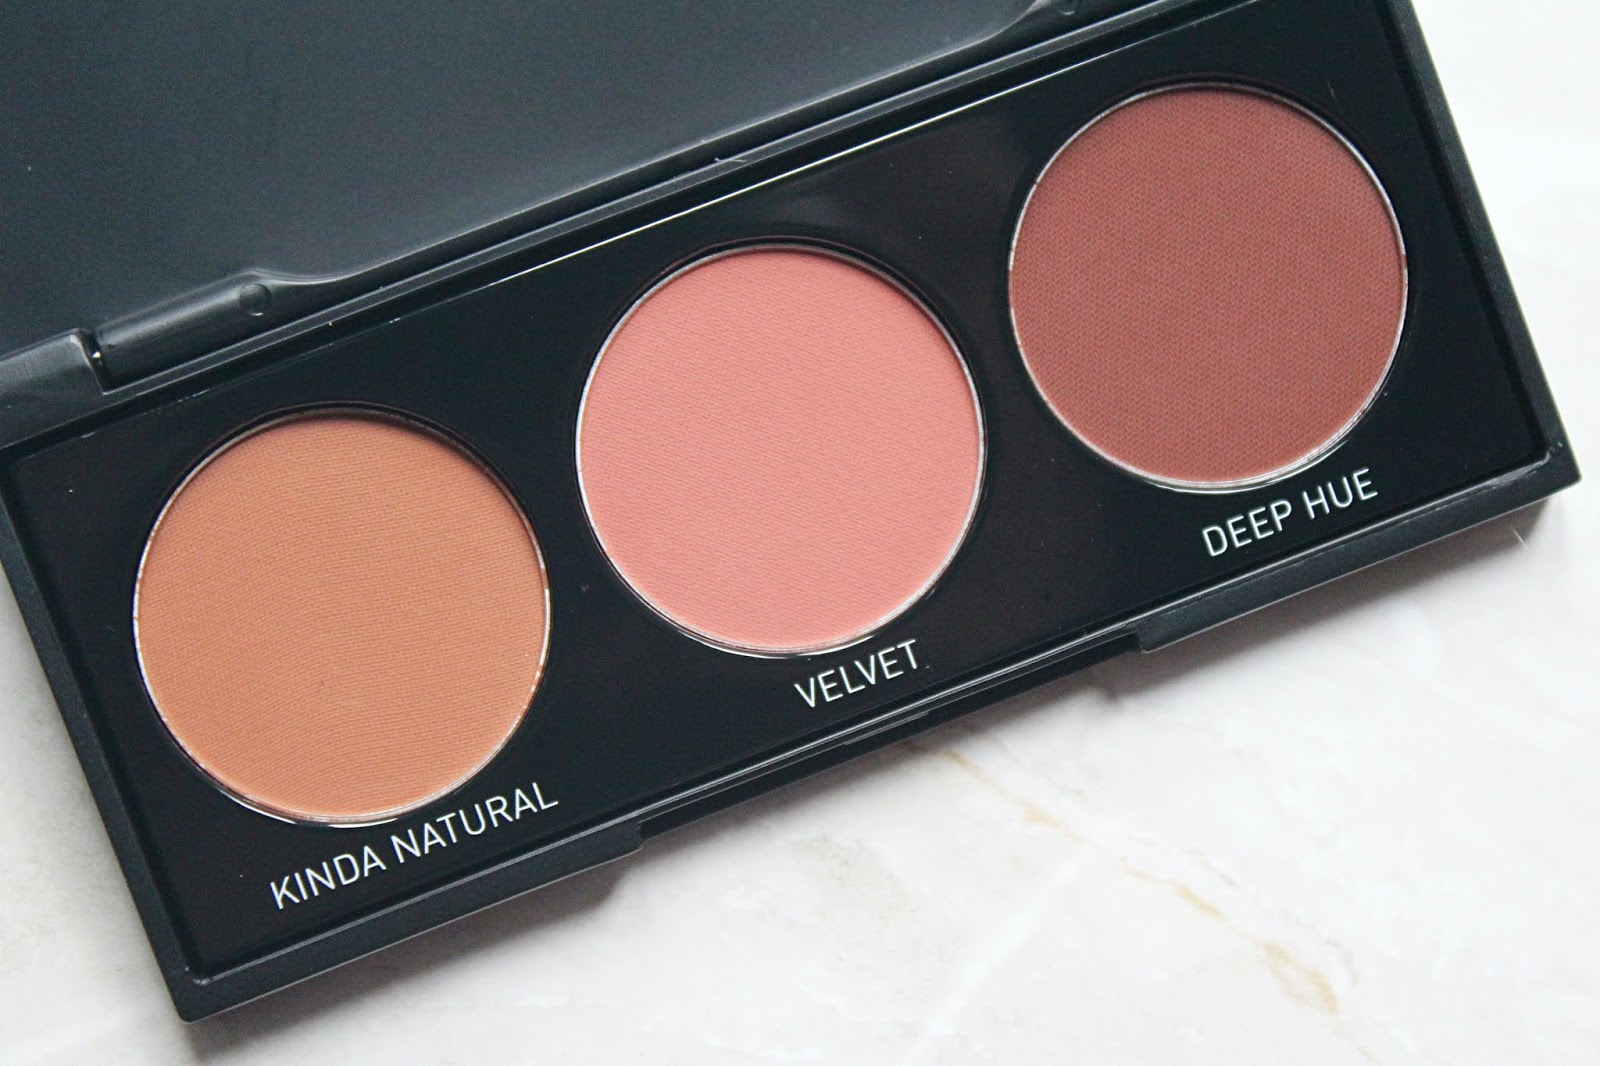 Morphe 3B Pure Nude Palette Review (+ Swatches)